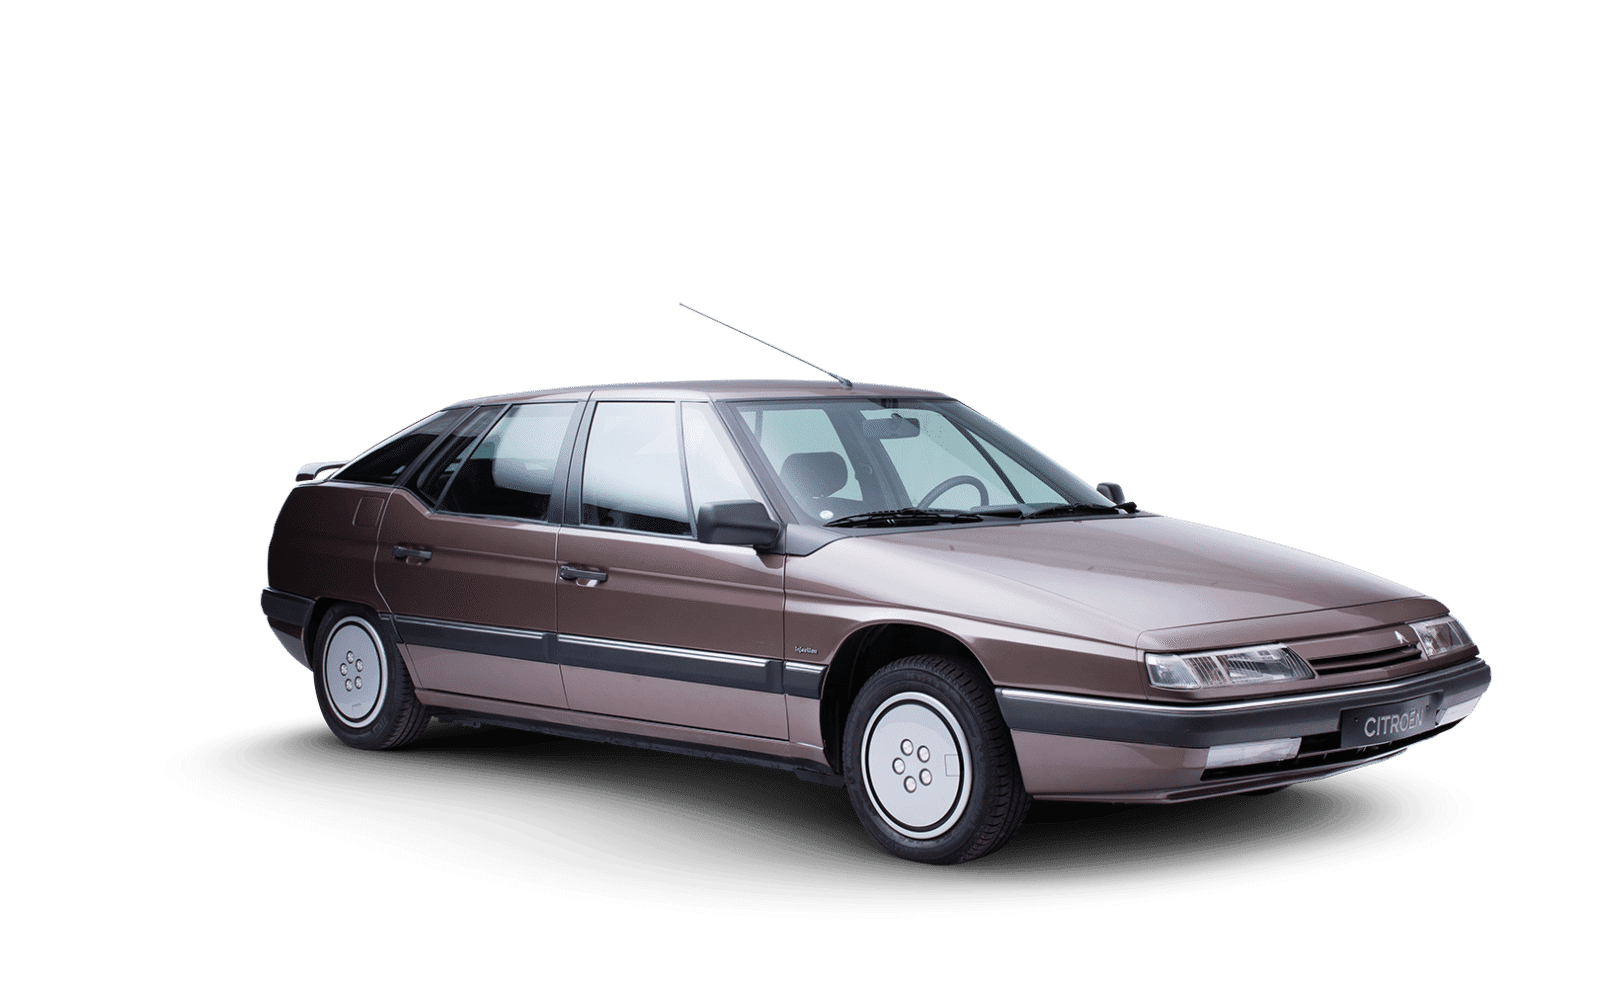 Citroen XM, Citroen, XM, French car, classic car, retro car, motoring, automotive, Adrian Flux, Not 2 Grand, www.not2grand.co.uk, Ronin, get the case now, featured, Citroen CX, CX, XM buying guide, car, cars